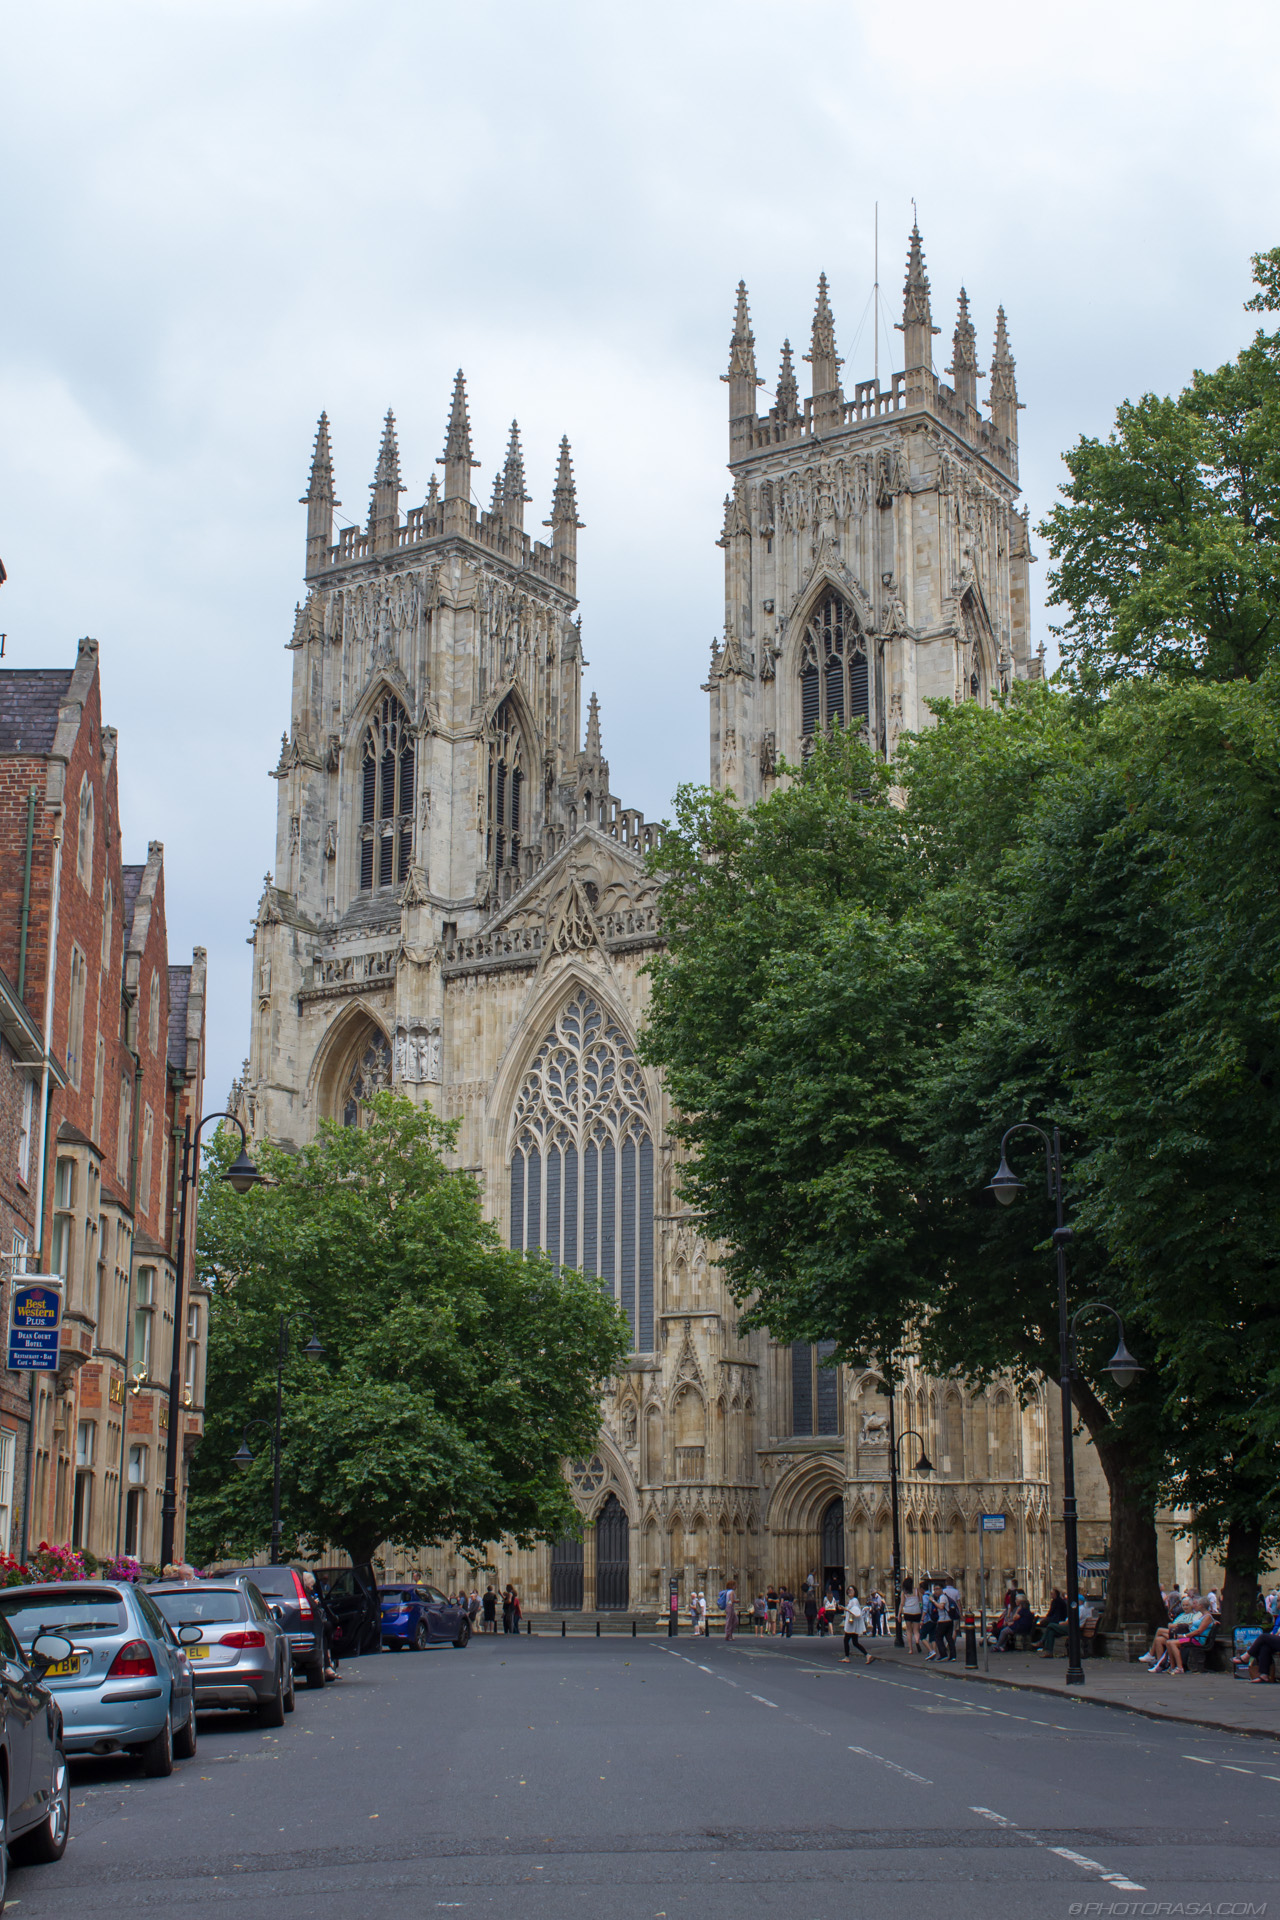 http://photorasa.com/places/yorkminster-cathedral/attachment/york-minster-cathedral-from-precentors-court-road/